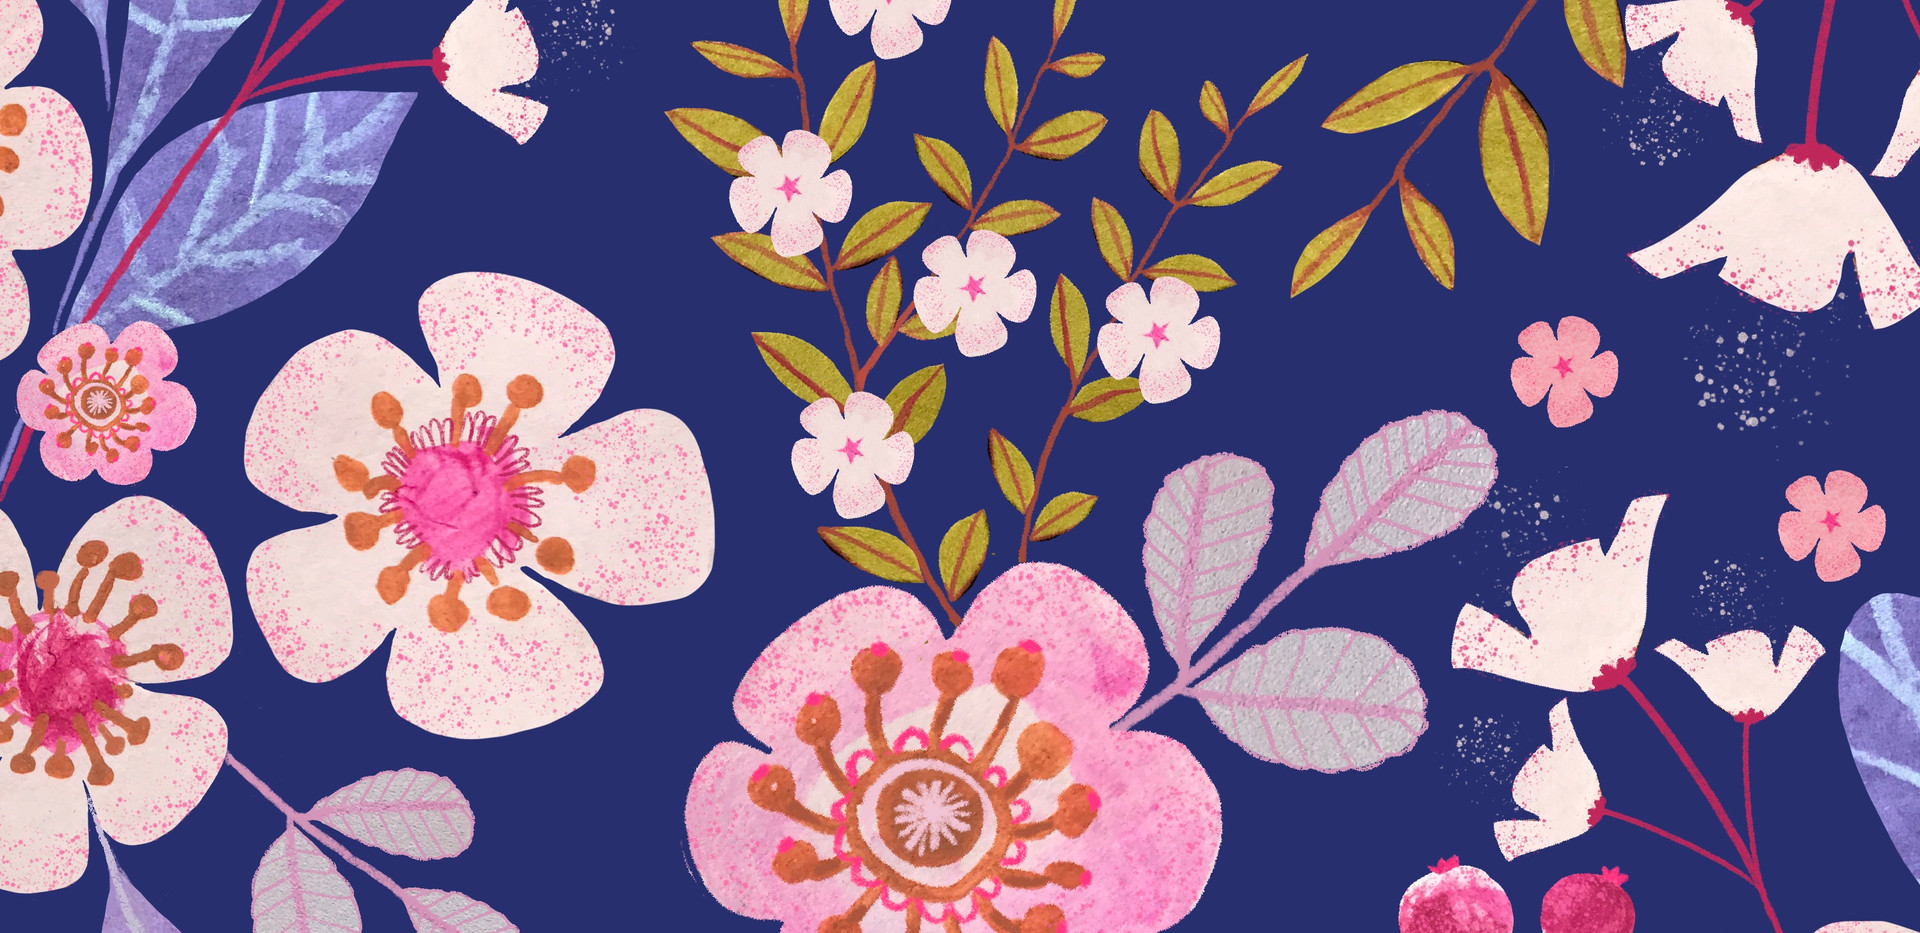 cherry blossom collage pattern